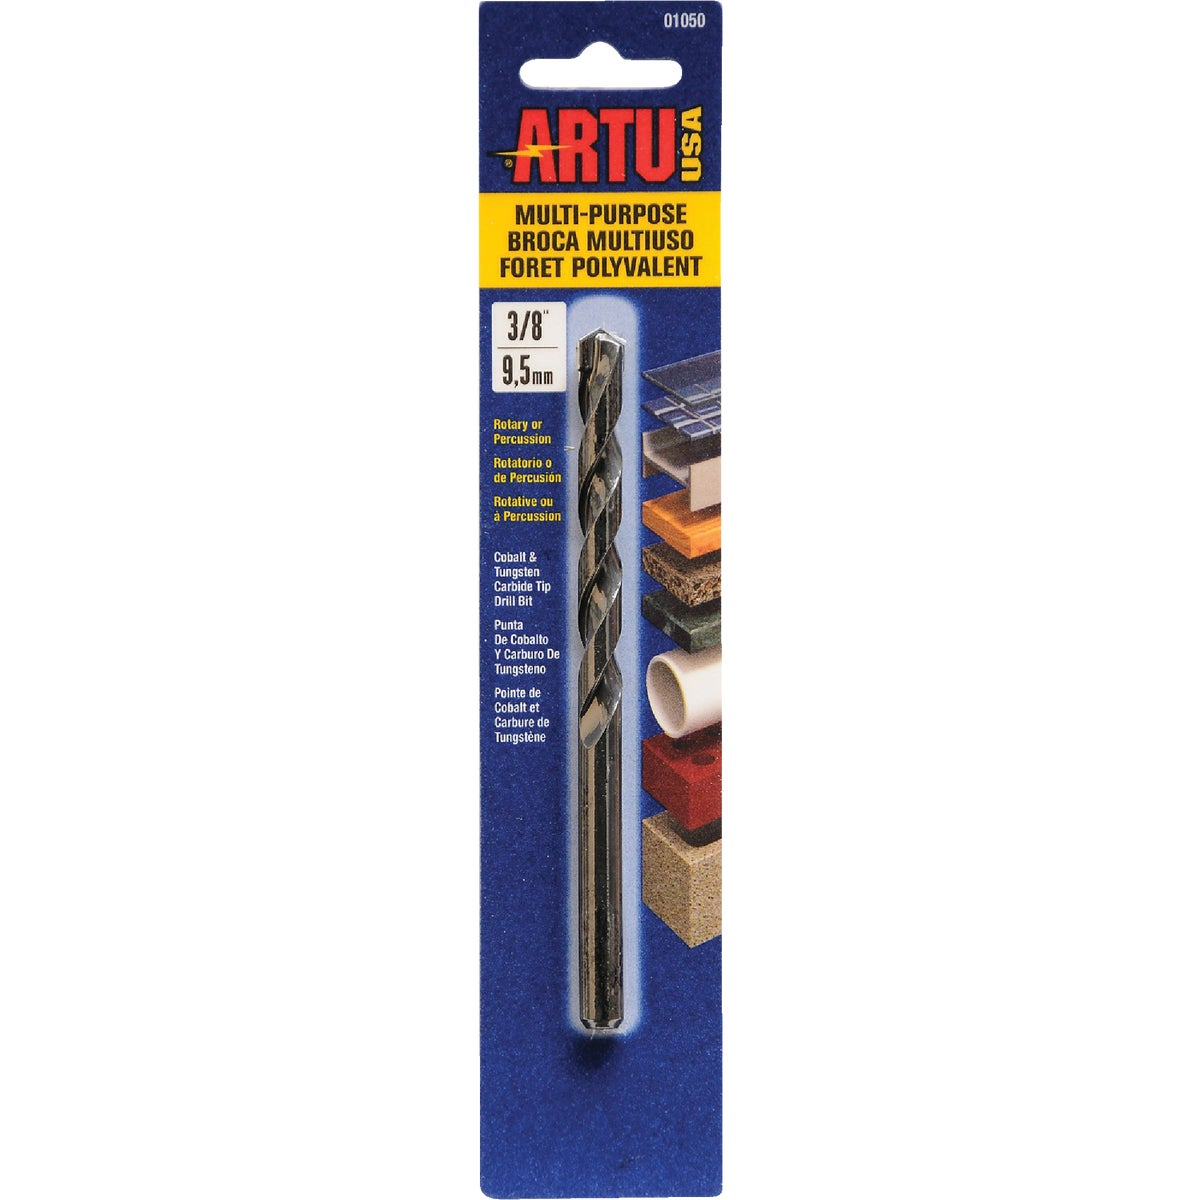 "3/8"" MULTIPURPOSE BIT - 01050 by Artu Usa Inc"